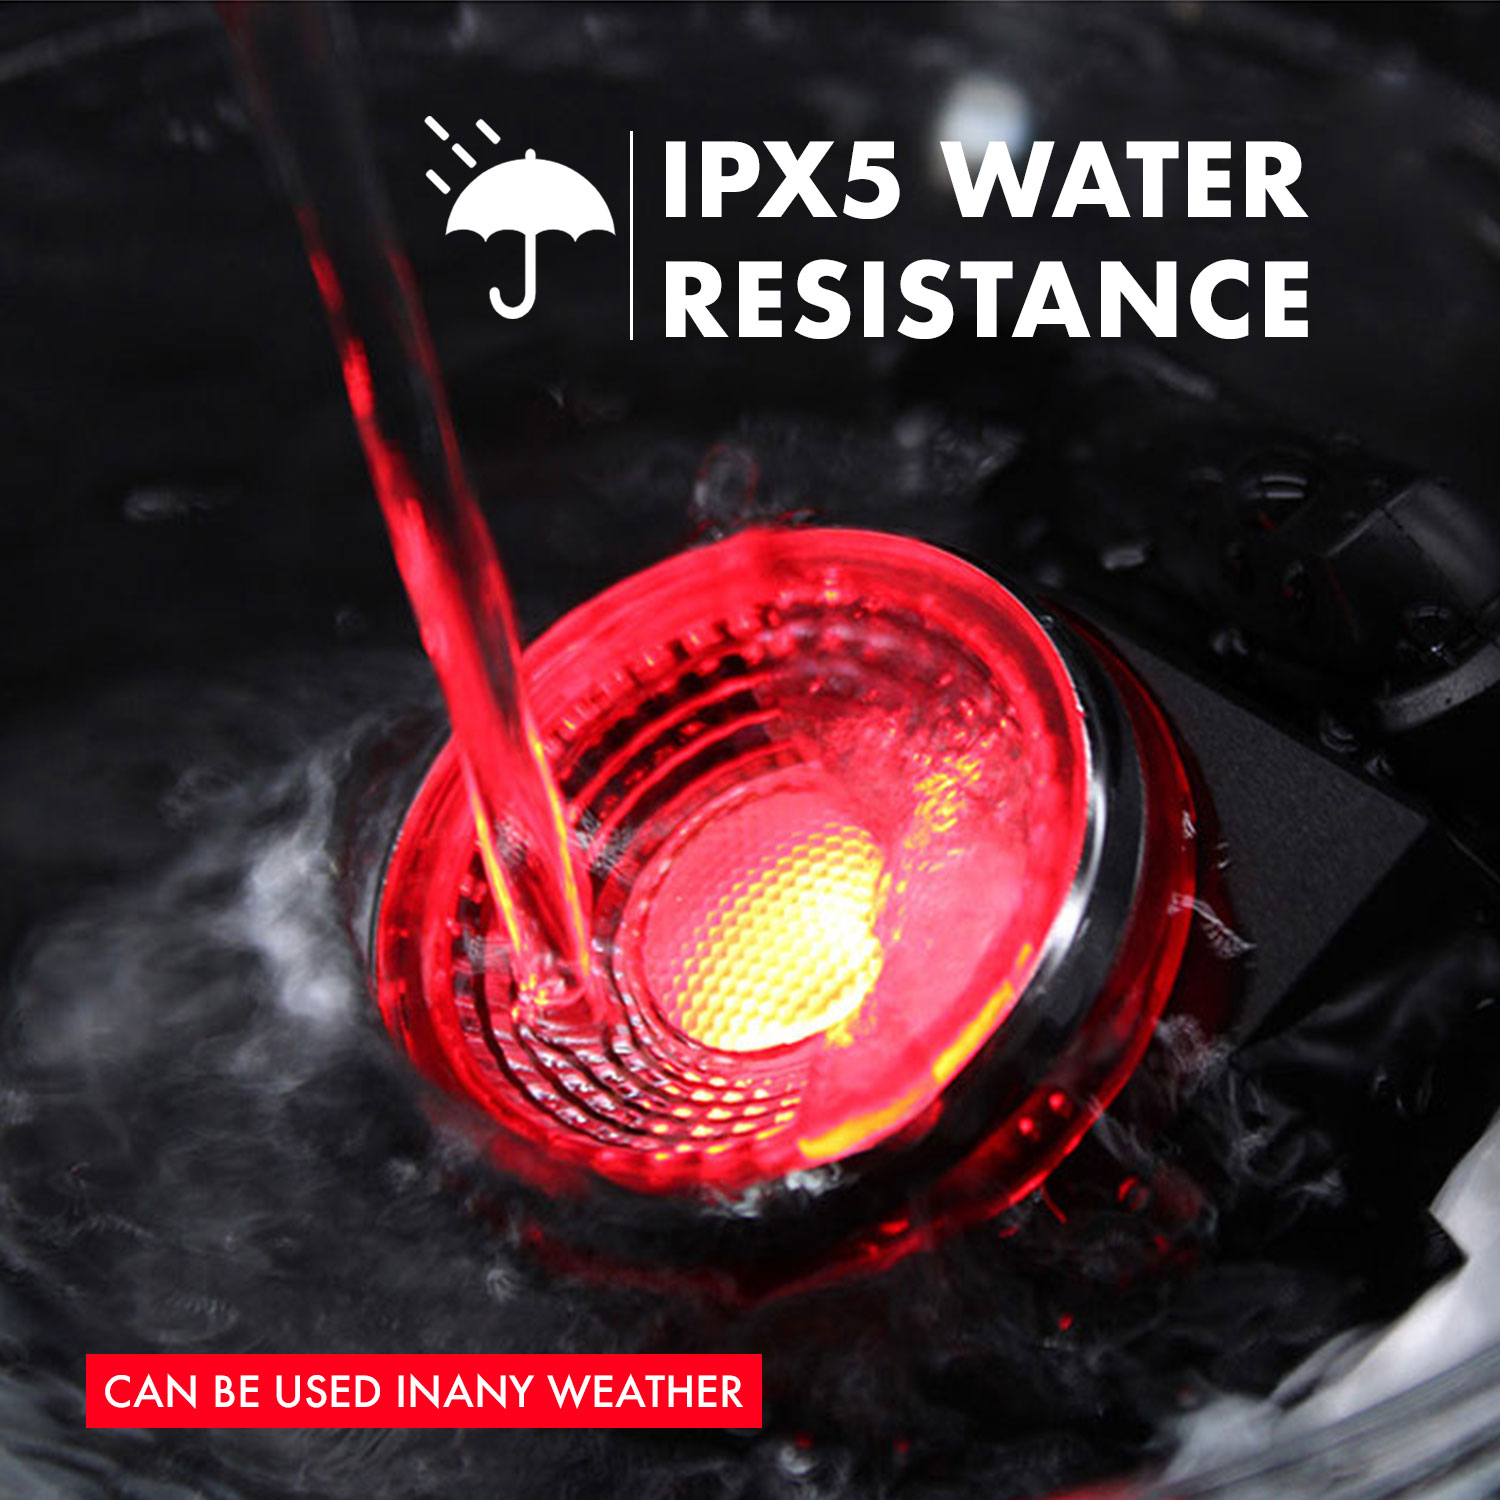 Top SaleCycling-Lamp Tail-Light-Ipx5 Bike Bicycle Security-Alarm Mini Waterproof LED with USB